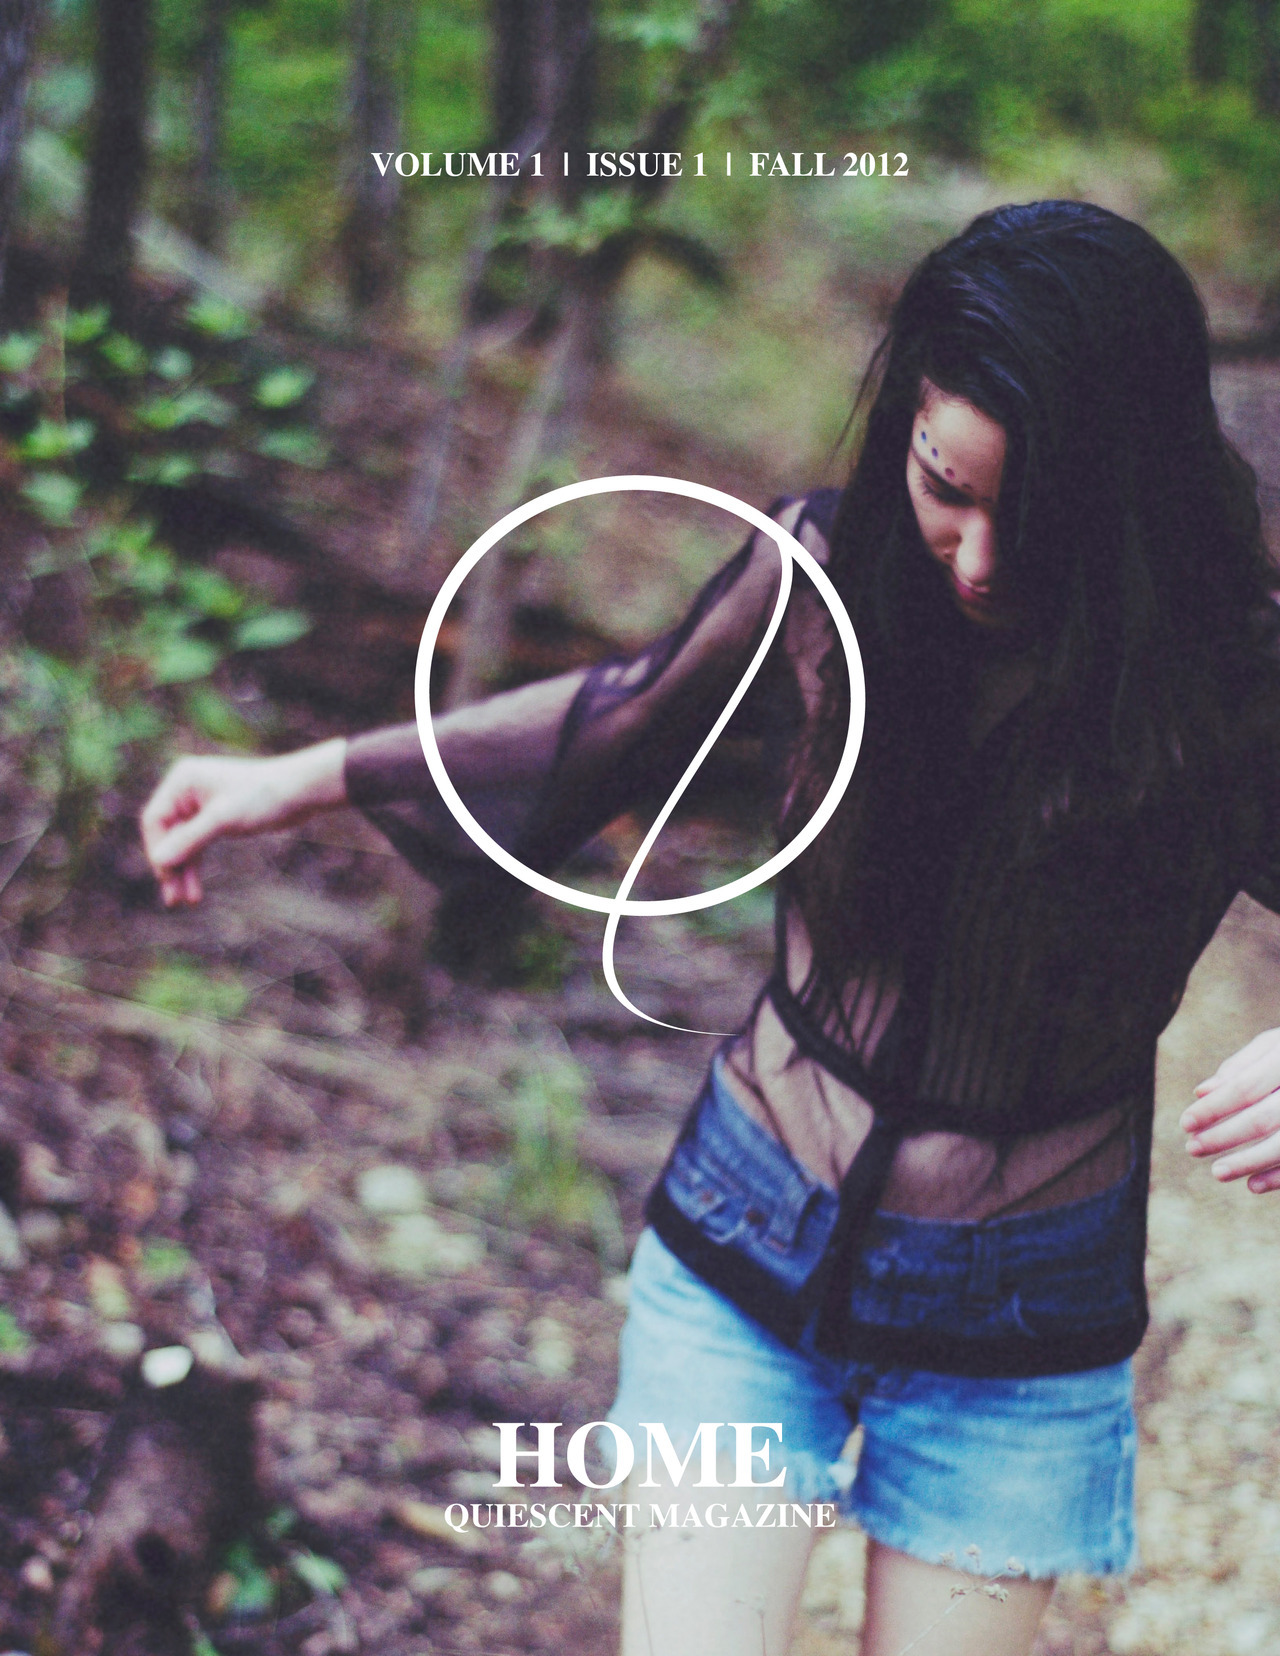 "quiescentmag:  The ""home"" issue is a series of different home images and other artwork by various artists, spanning between photographers like Stine Danielle, Rebekah Campbell, Greg Ponthus, and Bliss Braoudakis, to fine artists like Sara Anne Haas and Keyana Tahmaseb and writers Tori Hoover, Daisy Wang, and Lane Hansen. Though it is the premiere issue, we hope as a magazine to inspire artists of all types, and to give them a home within our pages. Read it here.Buy it here. Dont forget to check out our wonderful shop as well on the Quiescent website. And as always, thank you for your wonderful support!  Like us on Facebook 